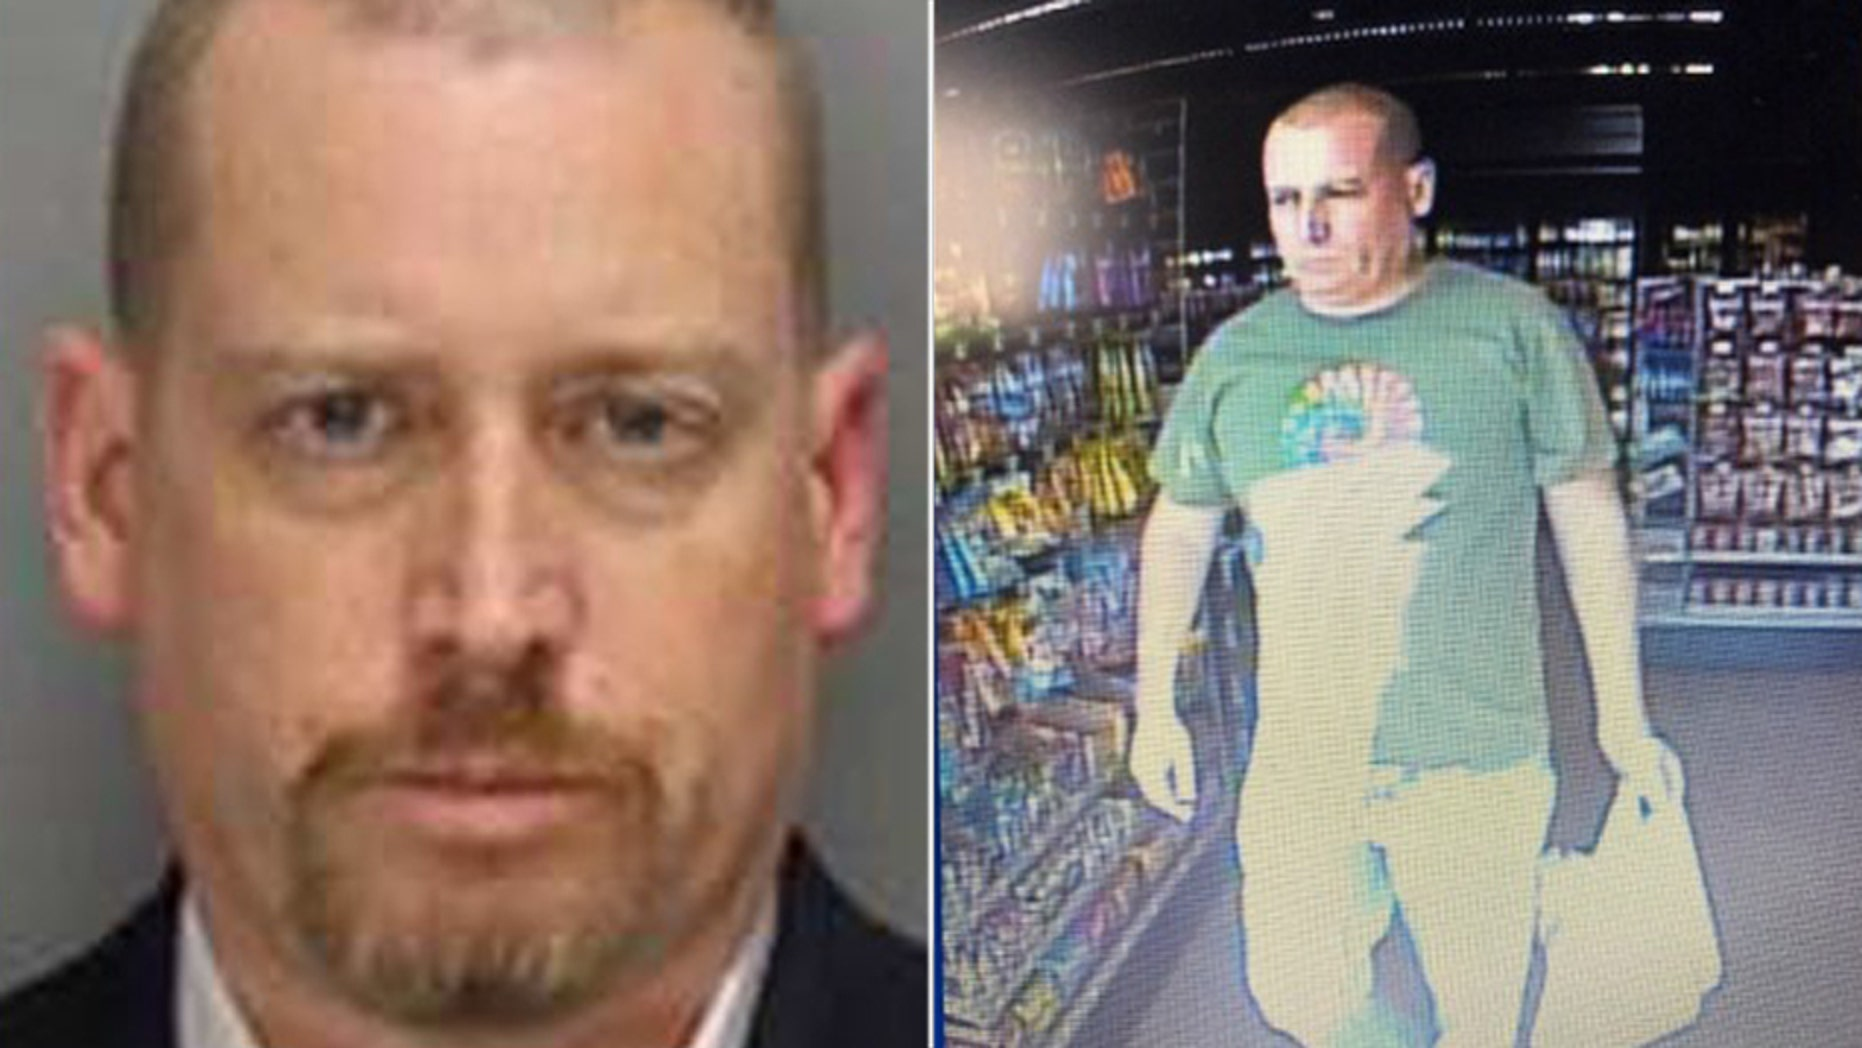 Photos of Richard Merritt. U.S. Marshals on Saturday released the photo on right showing Merritt with a goatee that was taken recently at in the Atlanta area.